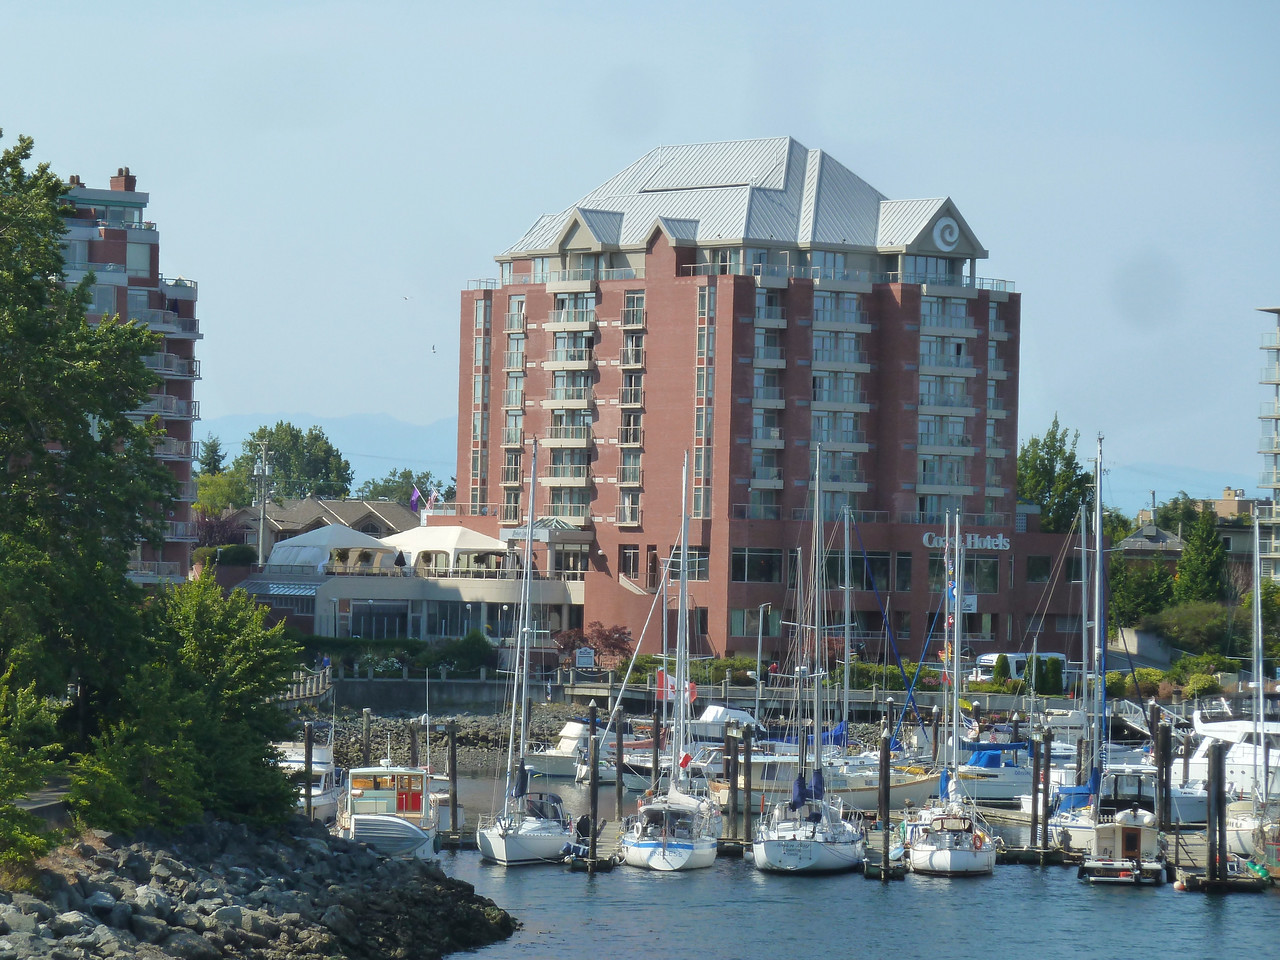 Our hotel in Victoria!